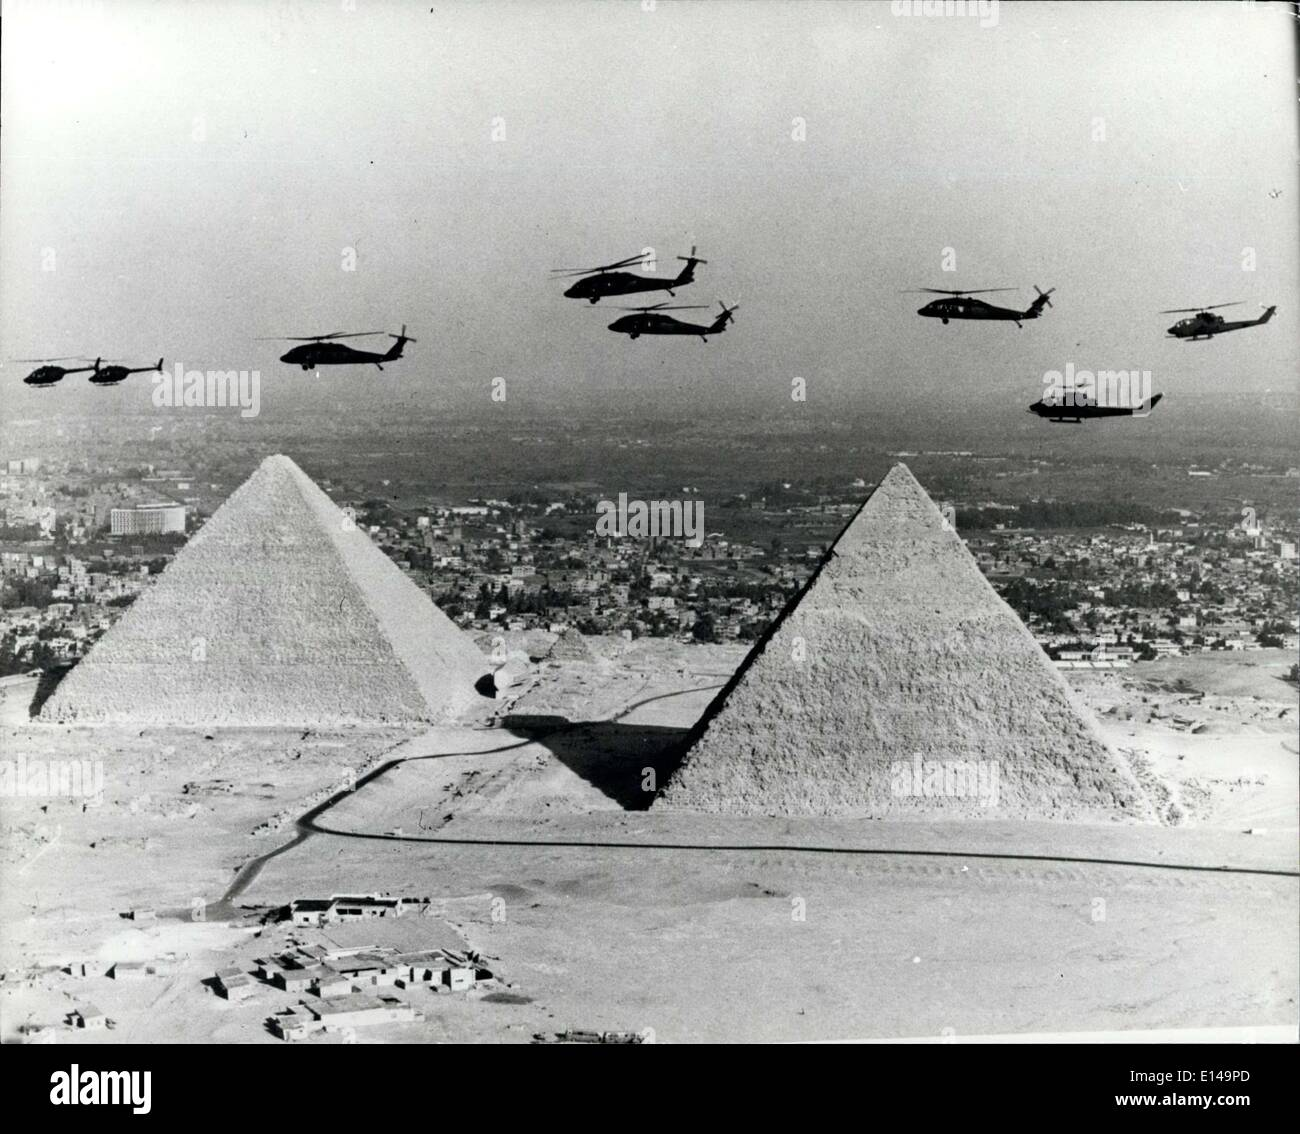 Apr. 17, 2012 - Contrast in Civilisations: This extraordinary spectacle marks a striking contrast in the civilisations of our planet. Hovering over the pyramids of El Giza, Cairo, is seen a flight of 20th century helicopters, symbols of man's technological advance. Beneath lies the history of the ancient Egyptians enshrined in monuments some 5000 years past. - Stock Image